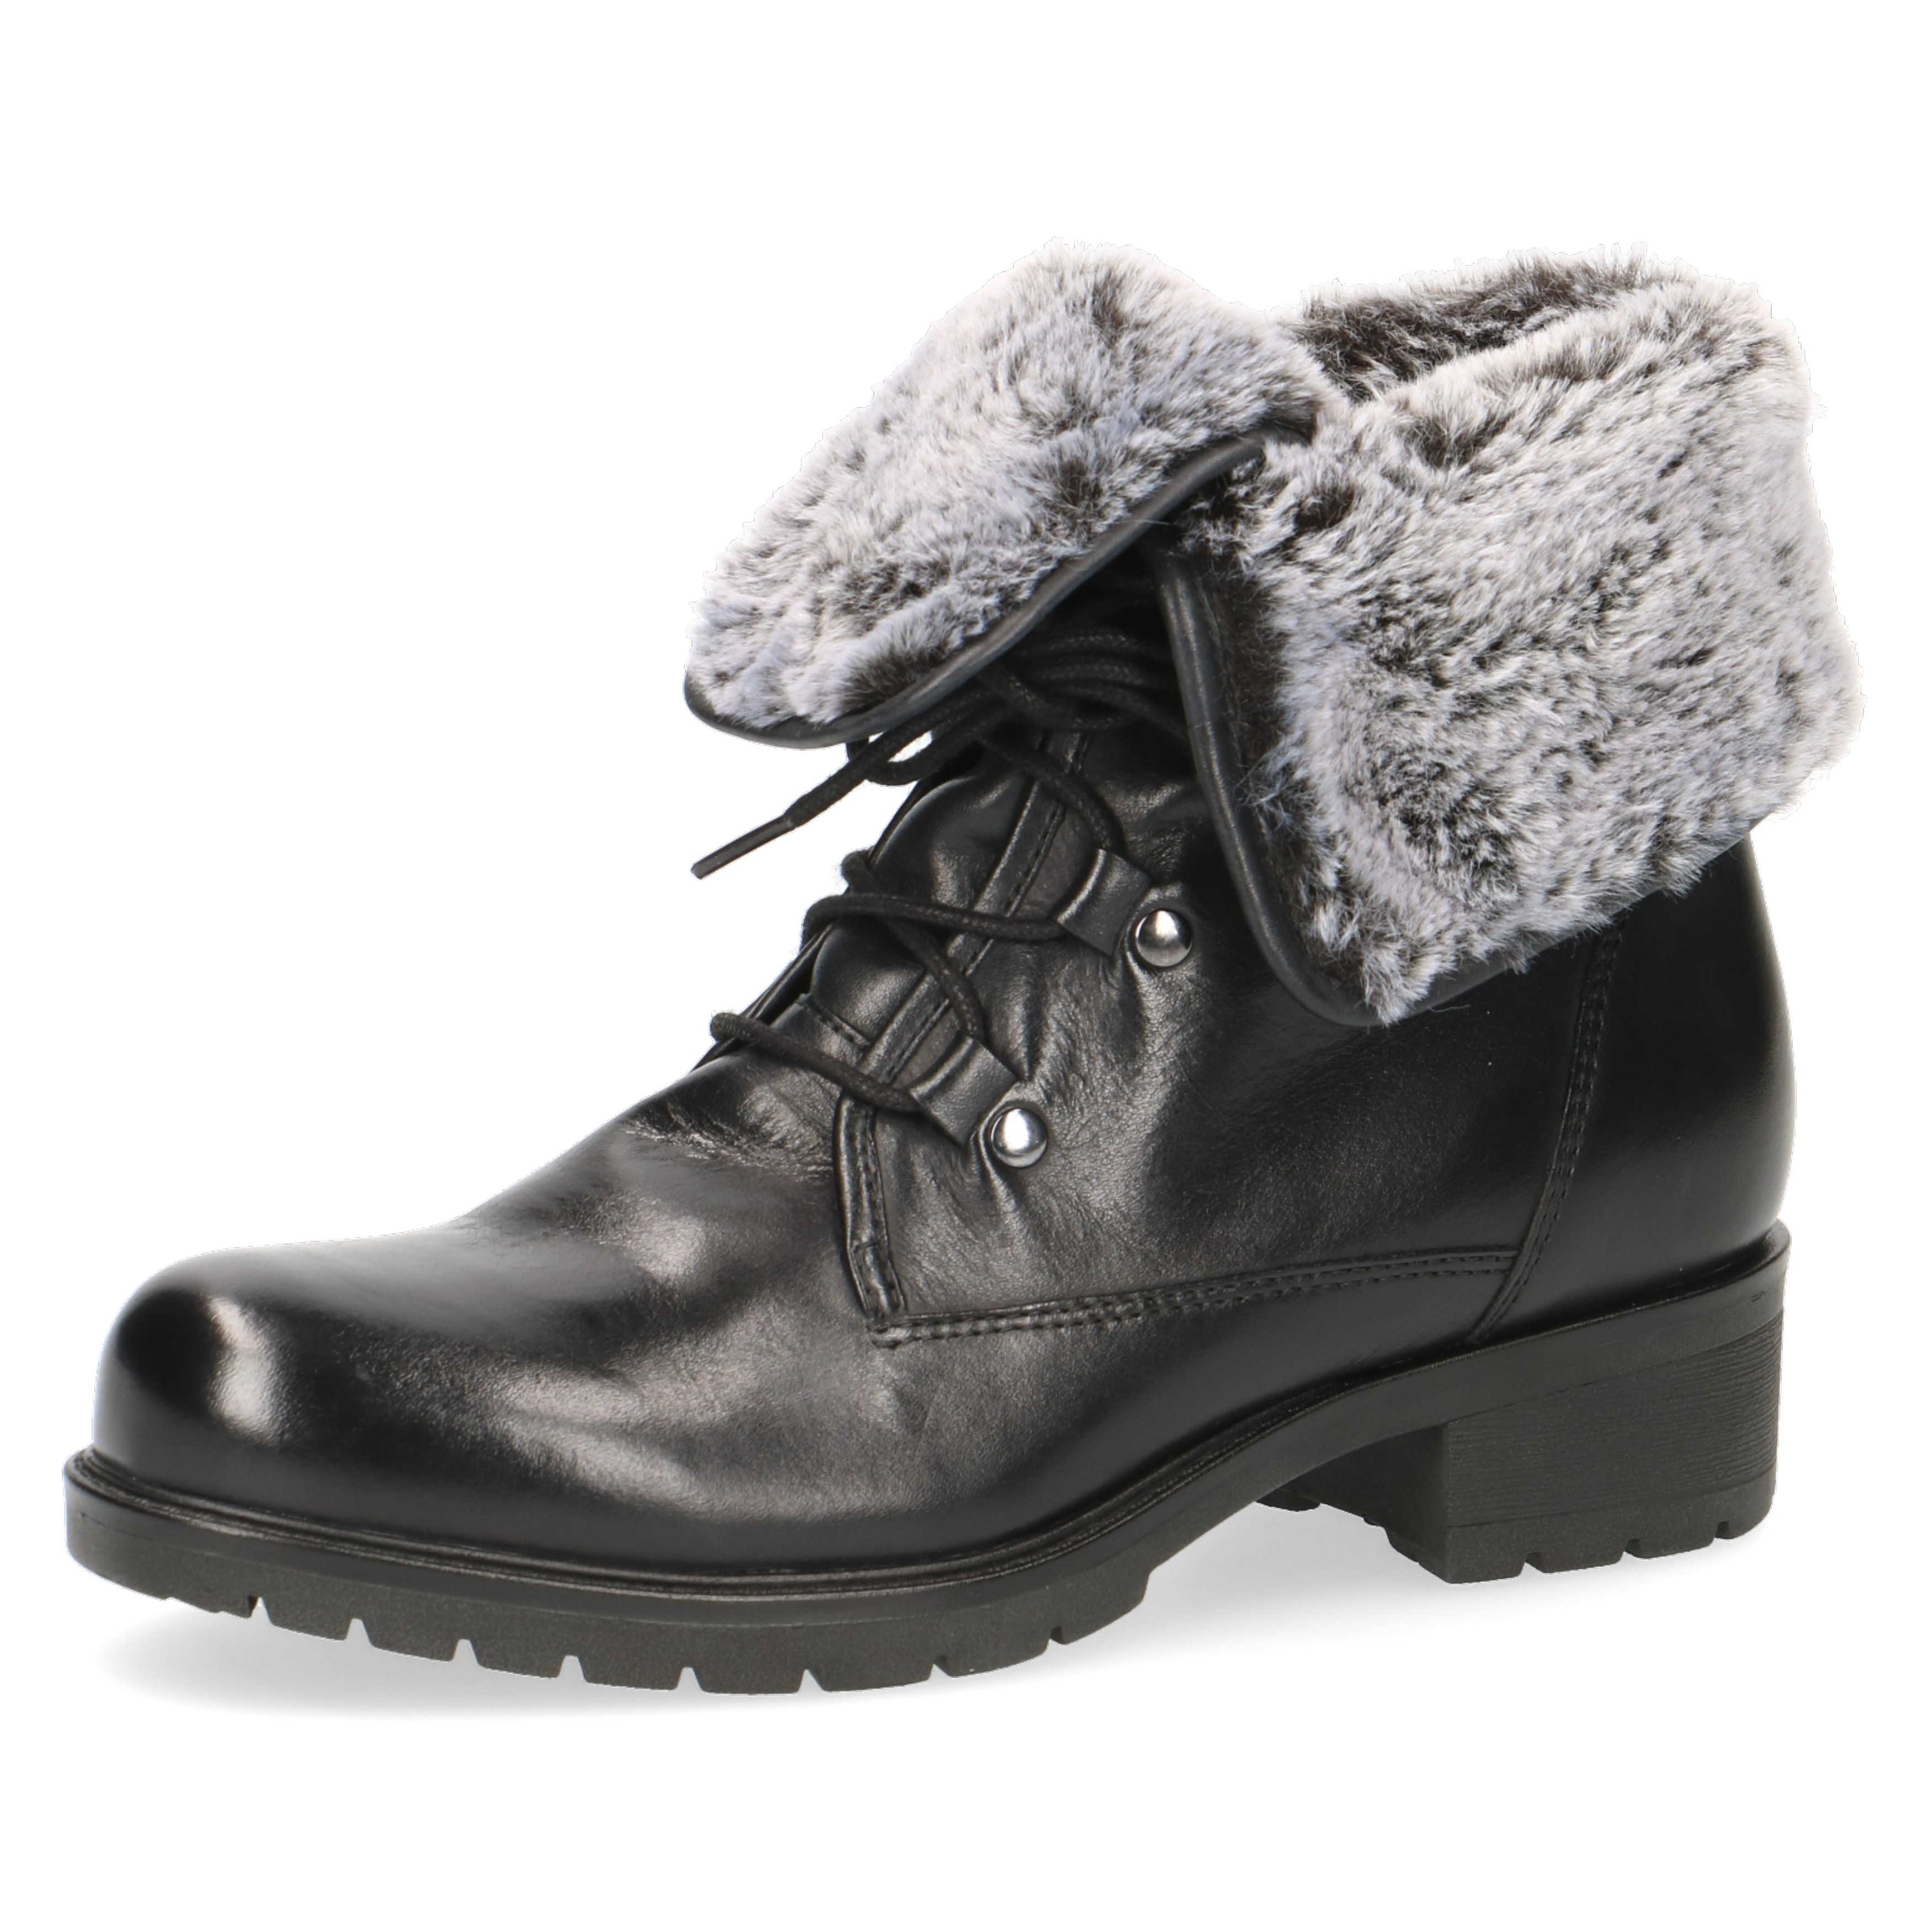 Caprice Black Nappa Lace up Fold over fur Lined Ankle Boots